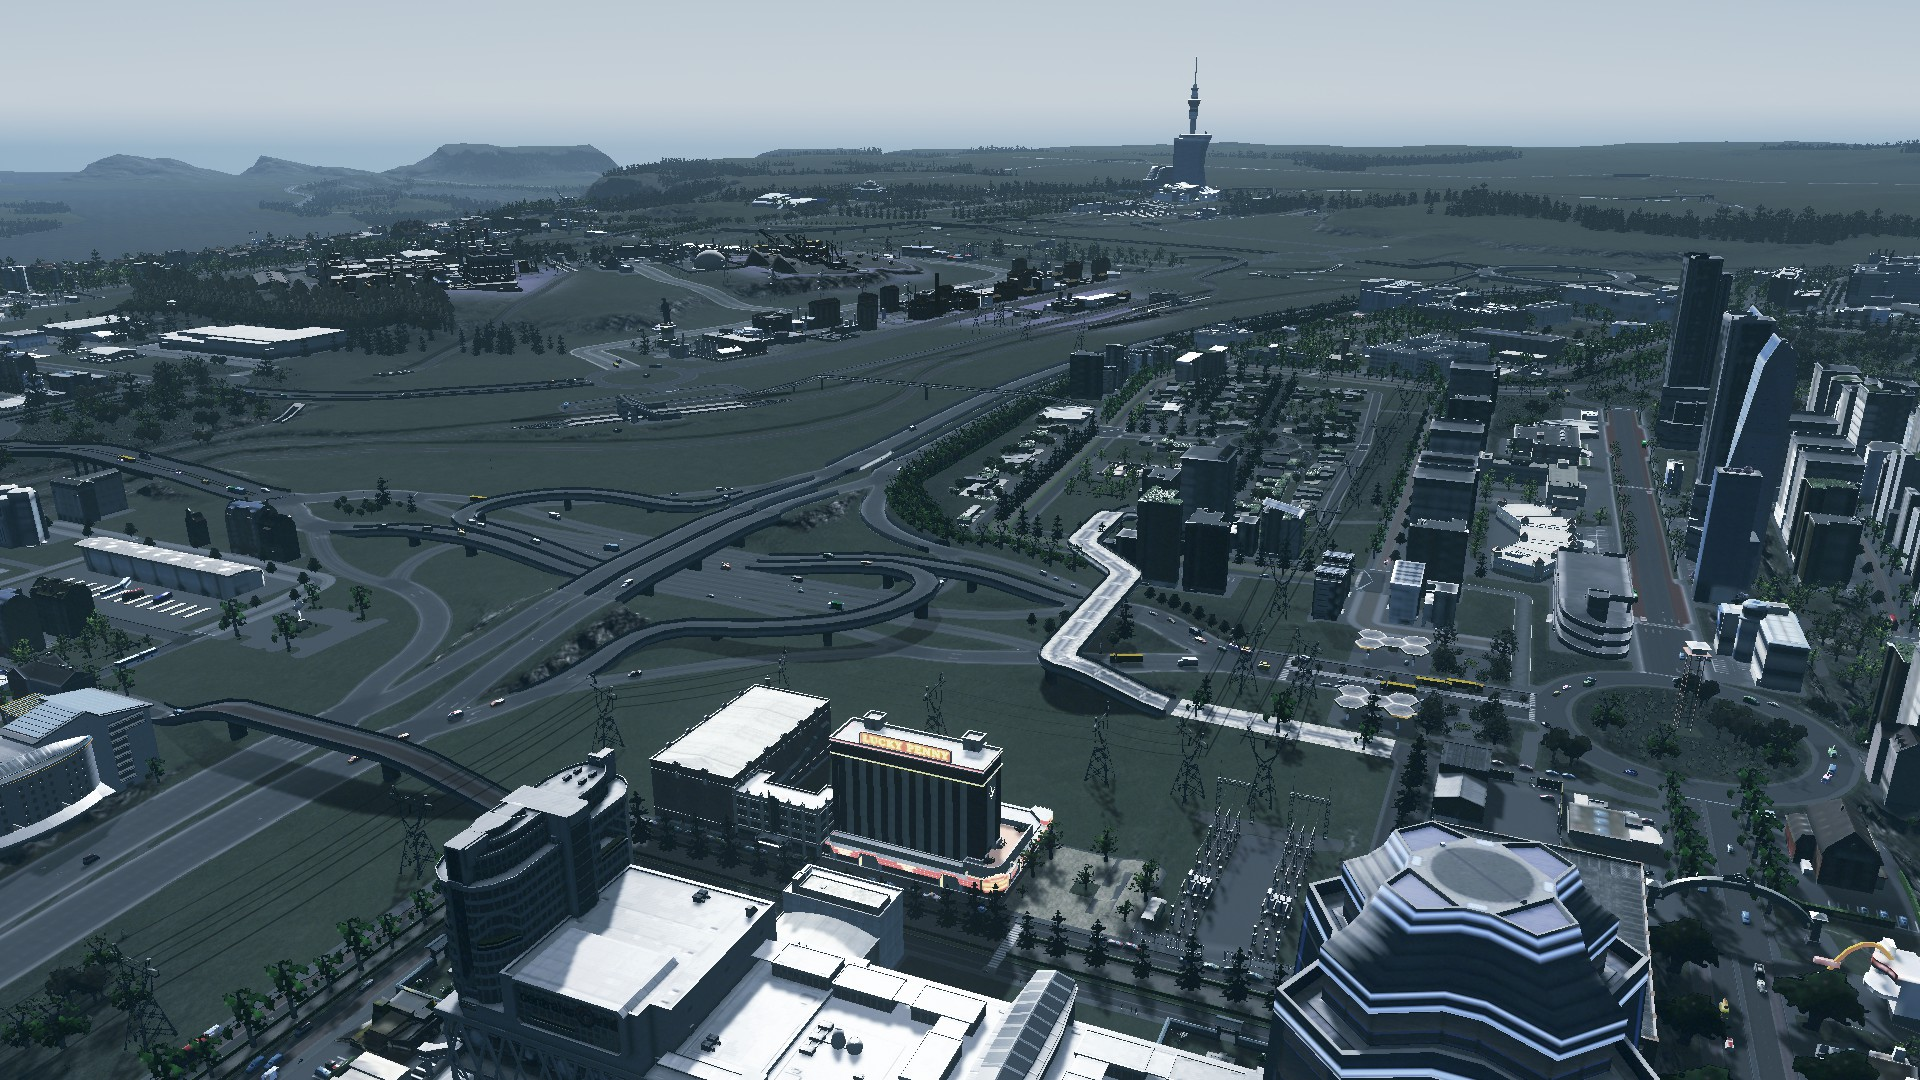 Putting Urban Geography to the test in: Building a City Centre TAKES TIME – LOTS OF TIME. #CitiesSkylines